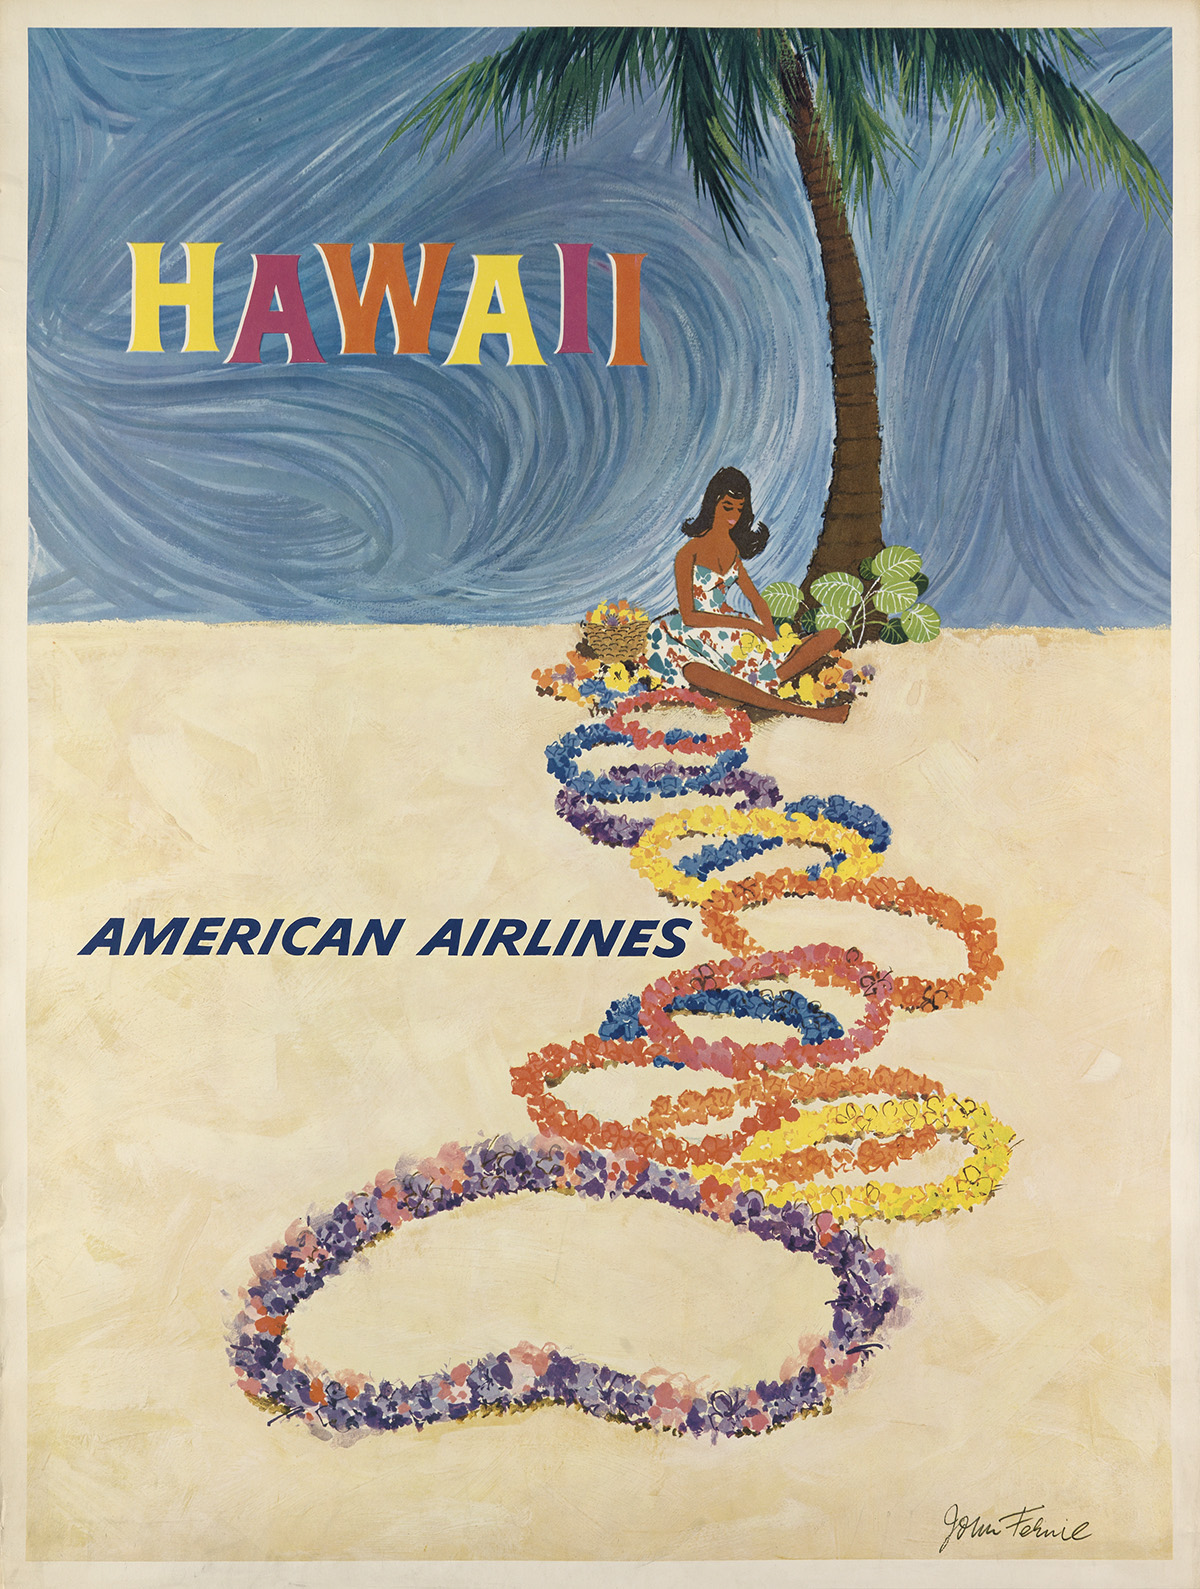 JOHN-FEHMIL-(DATES-UNKNOWN)-HAWAII--AMERICAN-AIRLINES-39x30-